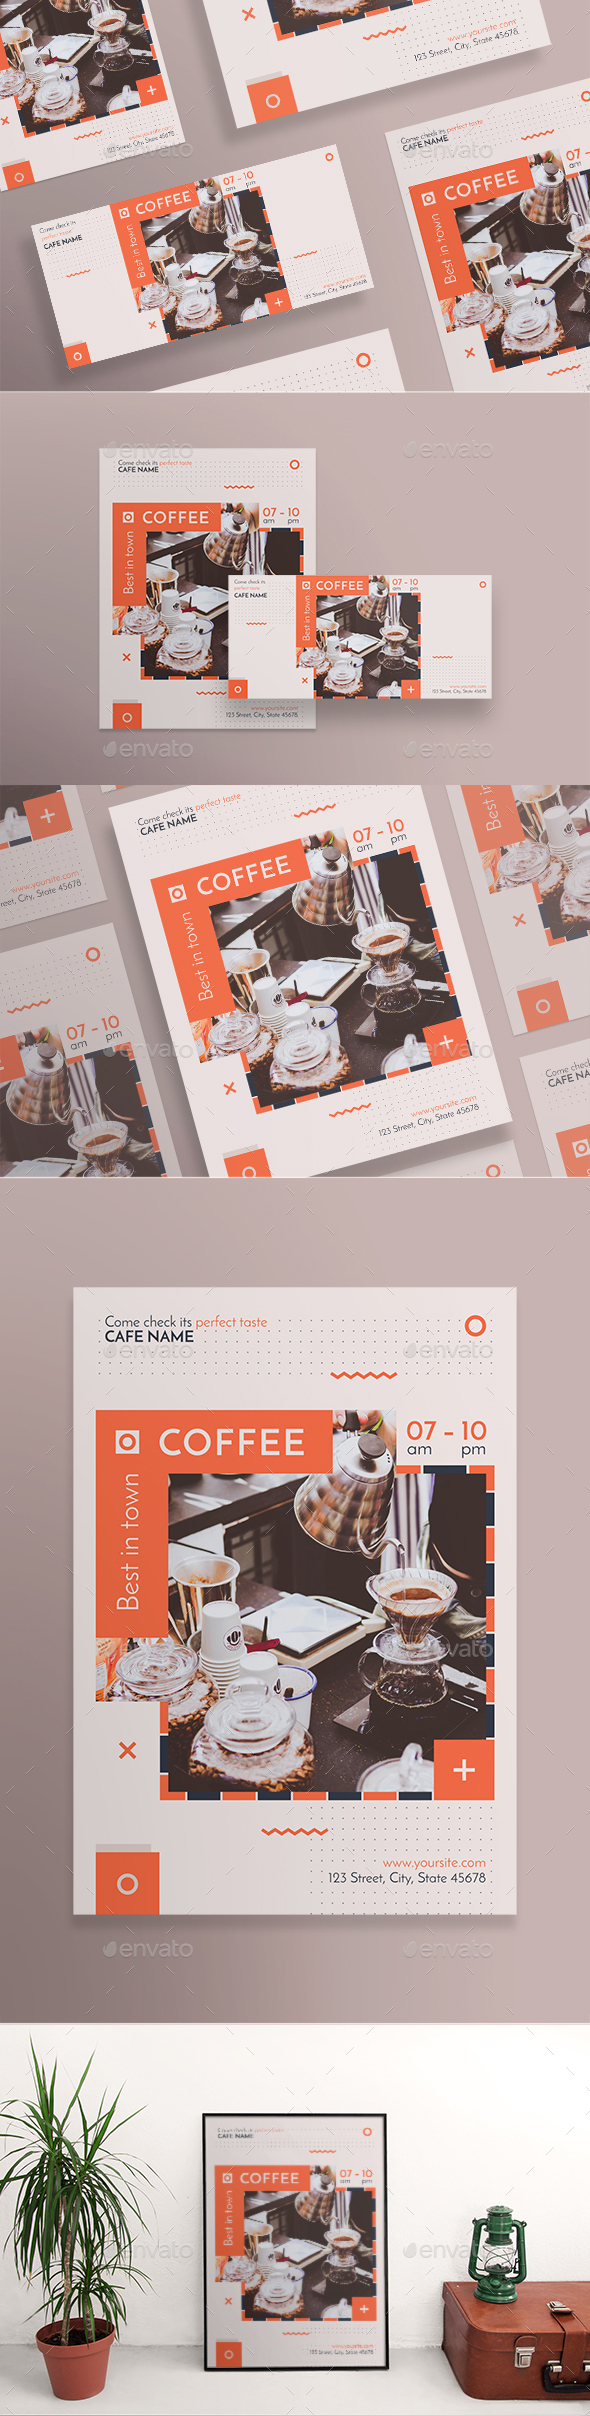 GraphicRiver Coffee Shop Flyers 20899125